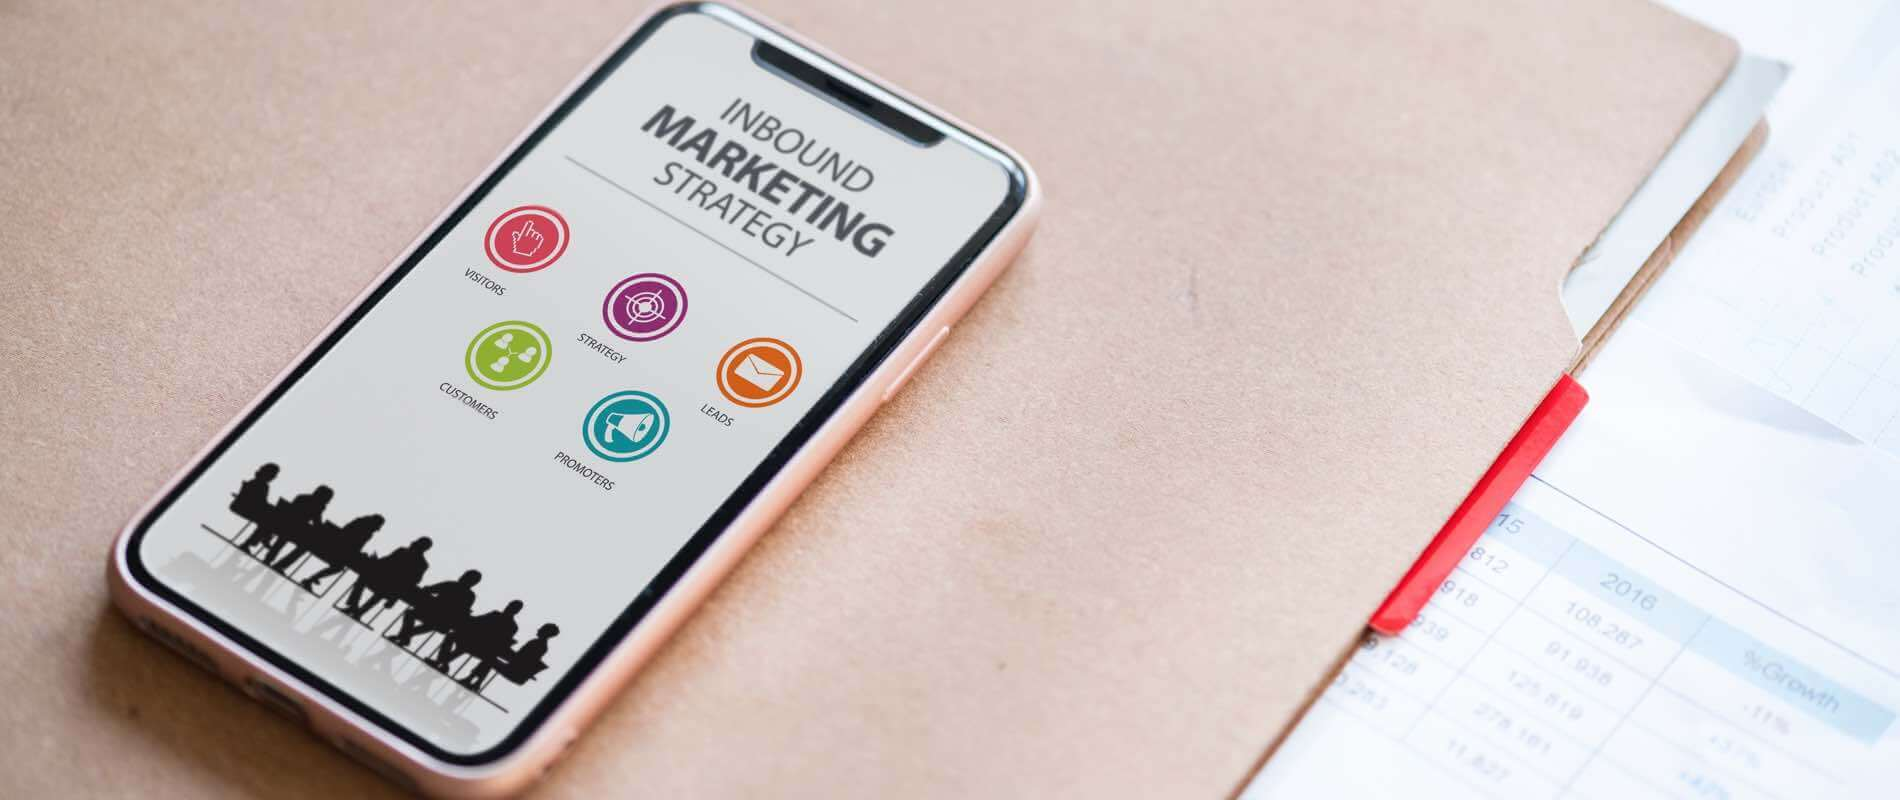 MARKETING - Les 5 conseils pour définir une bonne stratégie marketing - Article blog Qard seller vendeur marketplace MKP loan banking Qard. Qard Qard Finance Qardfinance